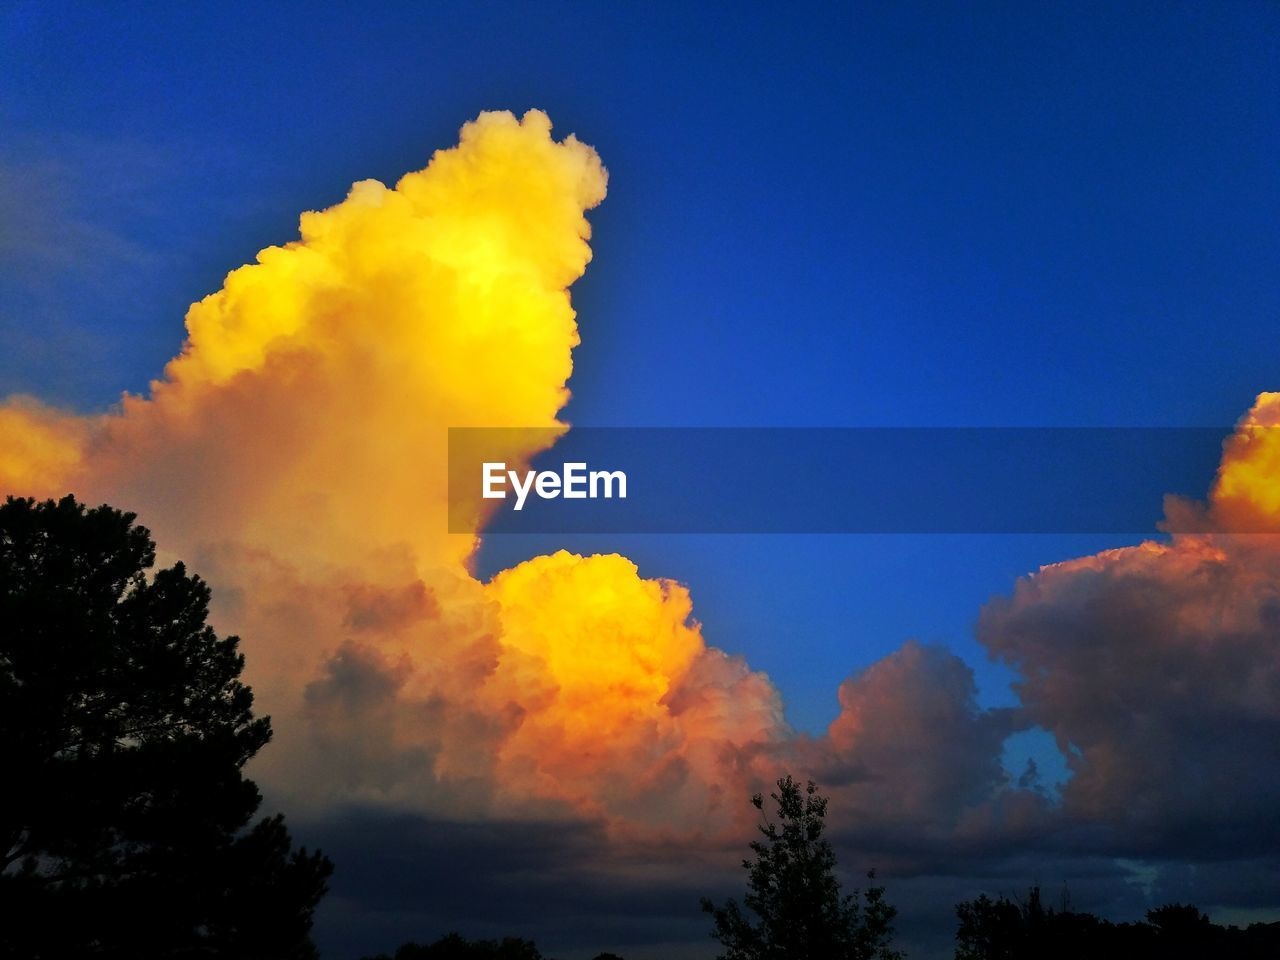 nature, sky, beauty in nature, low angle view, scenics, no people, tranquility, tree, cloud - sky, blue, tranquil scene, outdoors, silhouette, sunset, yellow, day, multi colored